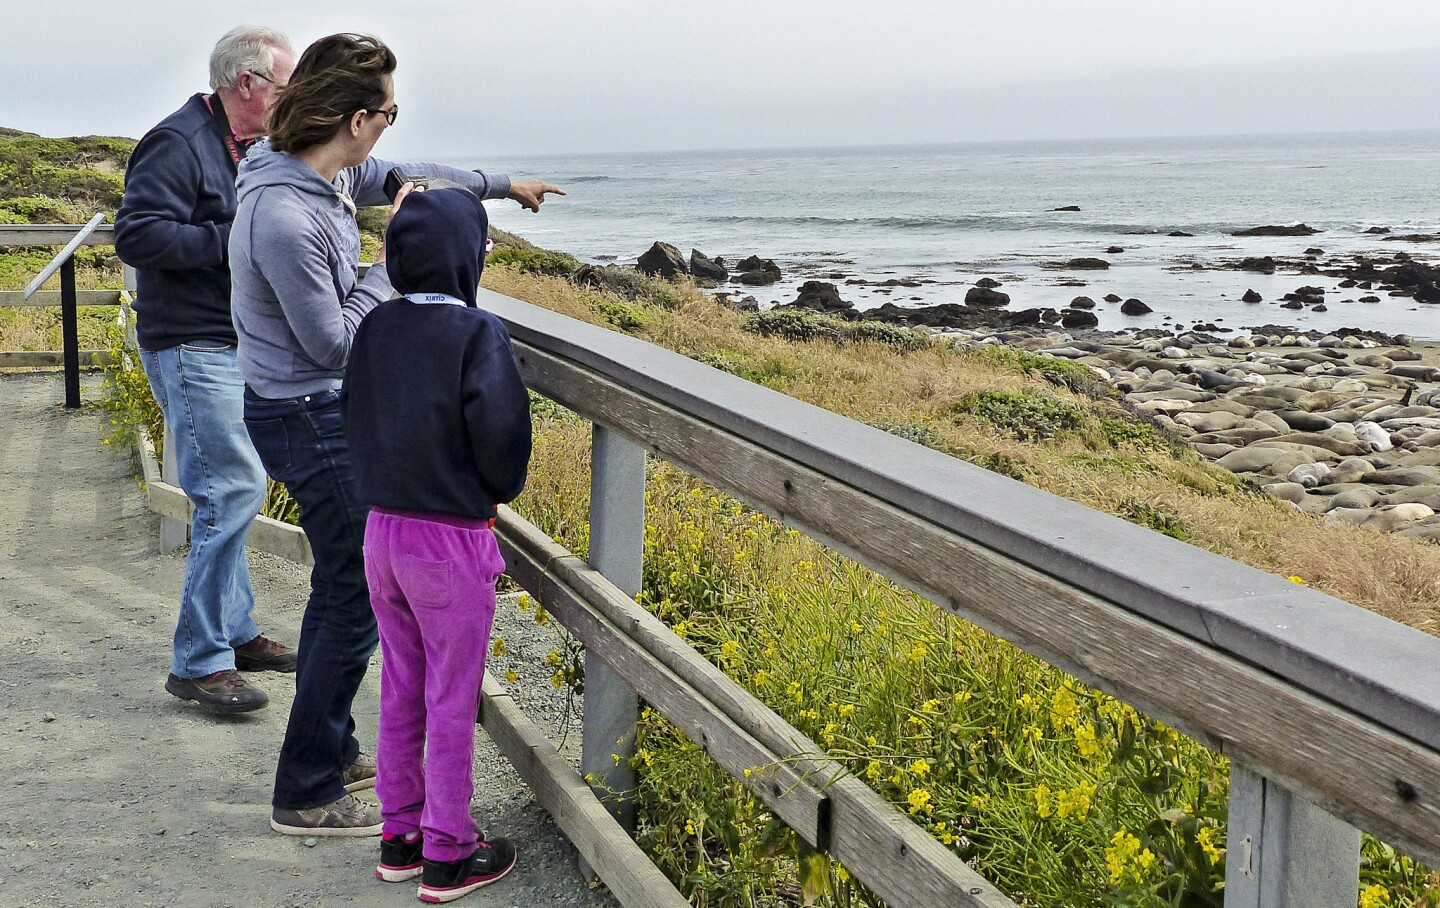 Visitors watch the elephant seals from a safe distance.